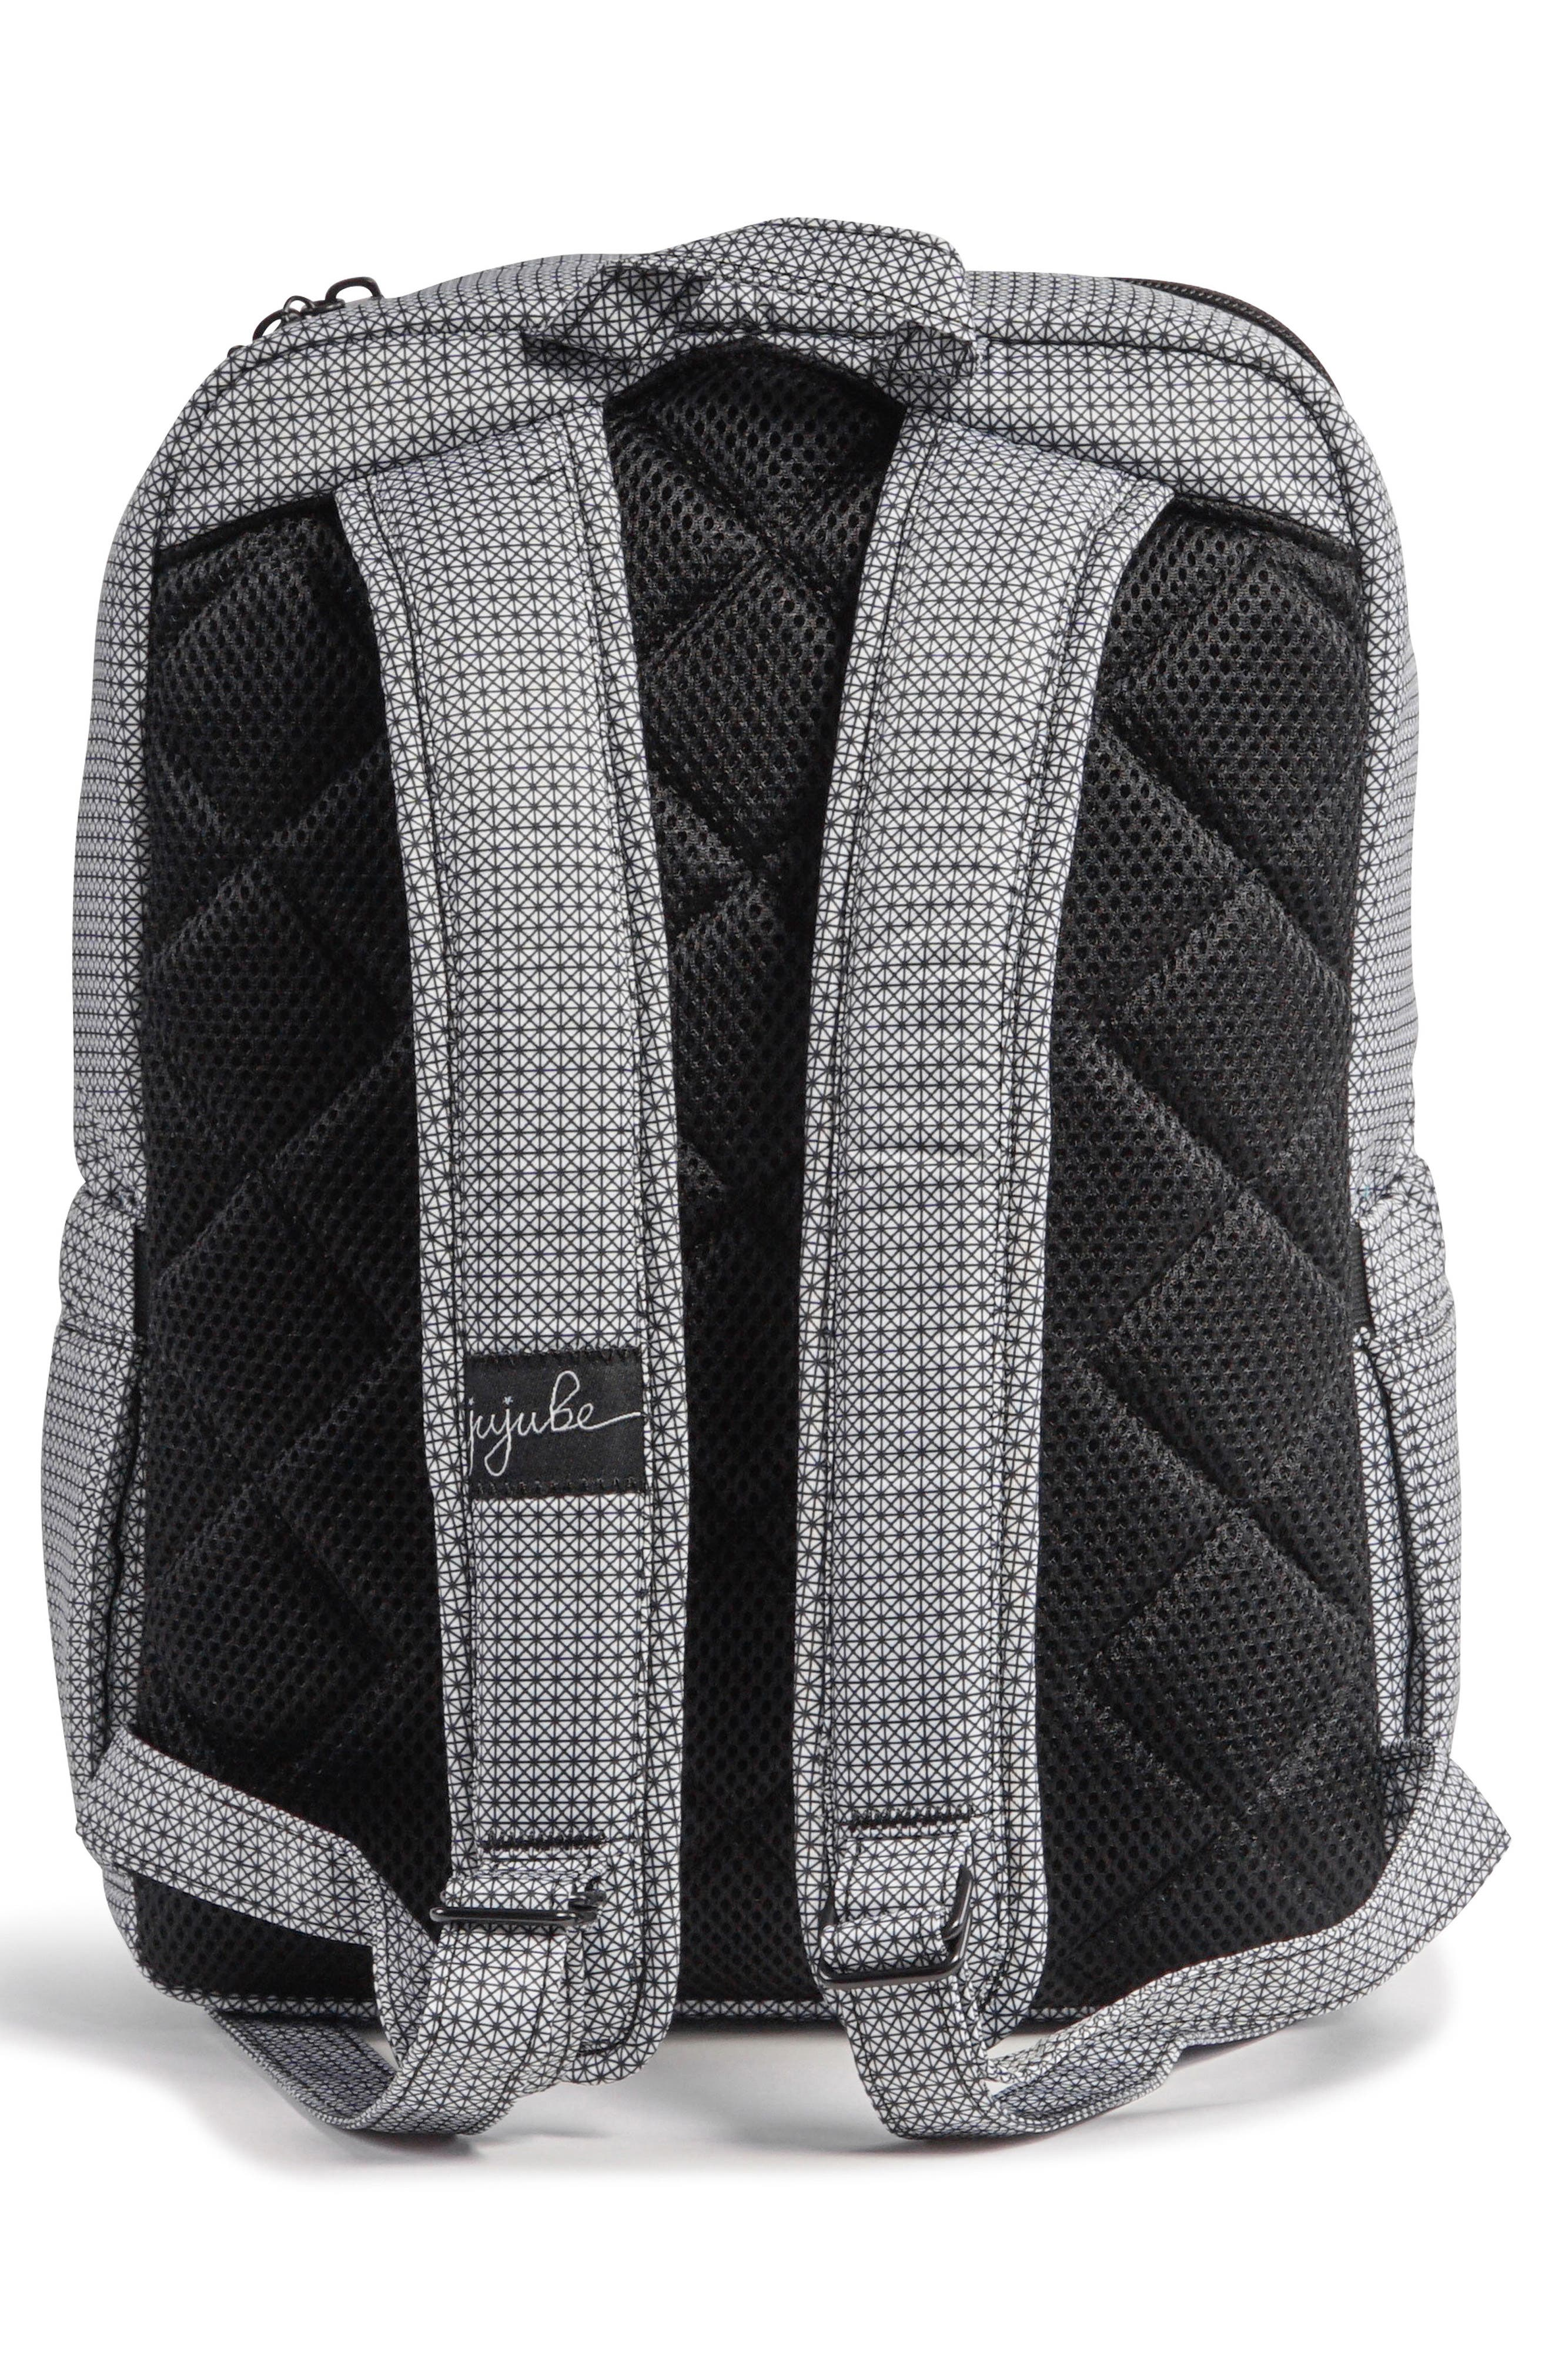 'Mini Be - Onyx Collection' Backpack,                             Alternate thumbnail 3, color,                             BLACK MATRIX